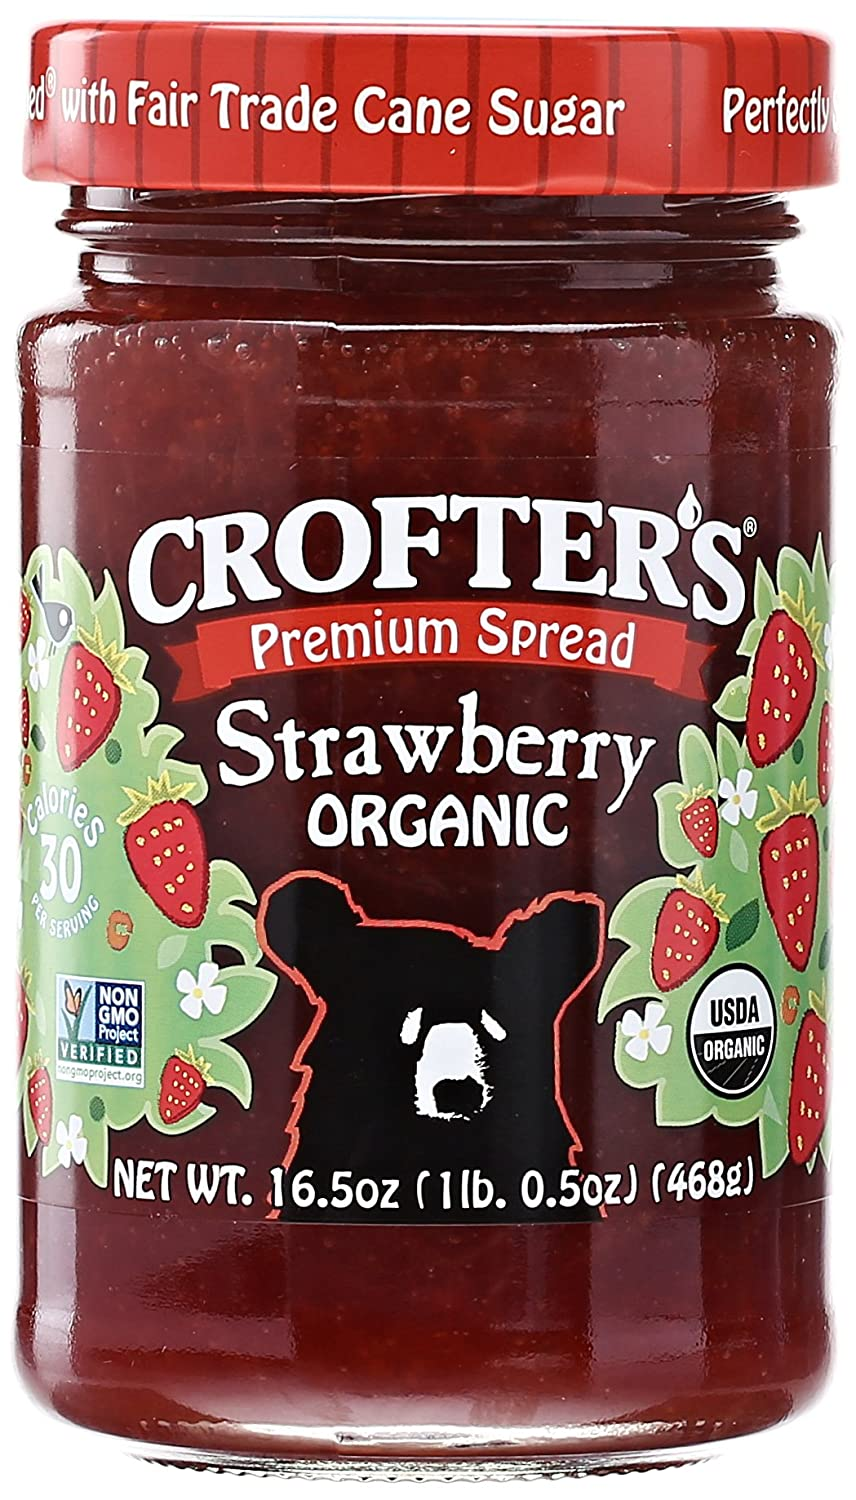 Crofters Organic Strawberry Premium Spread, 16.5 oz